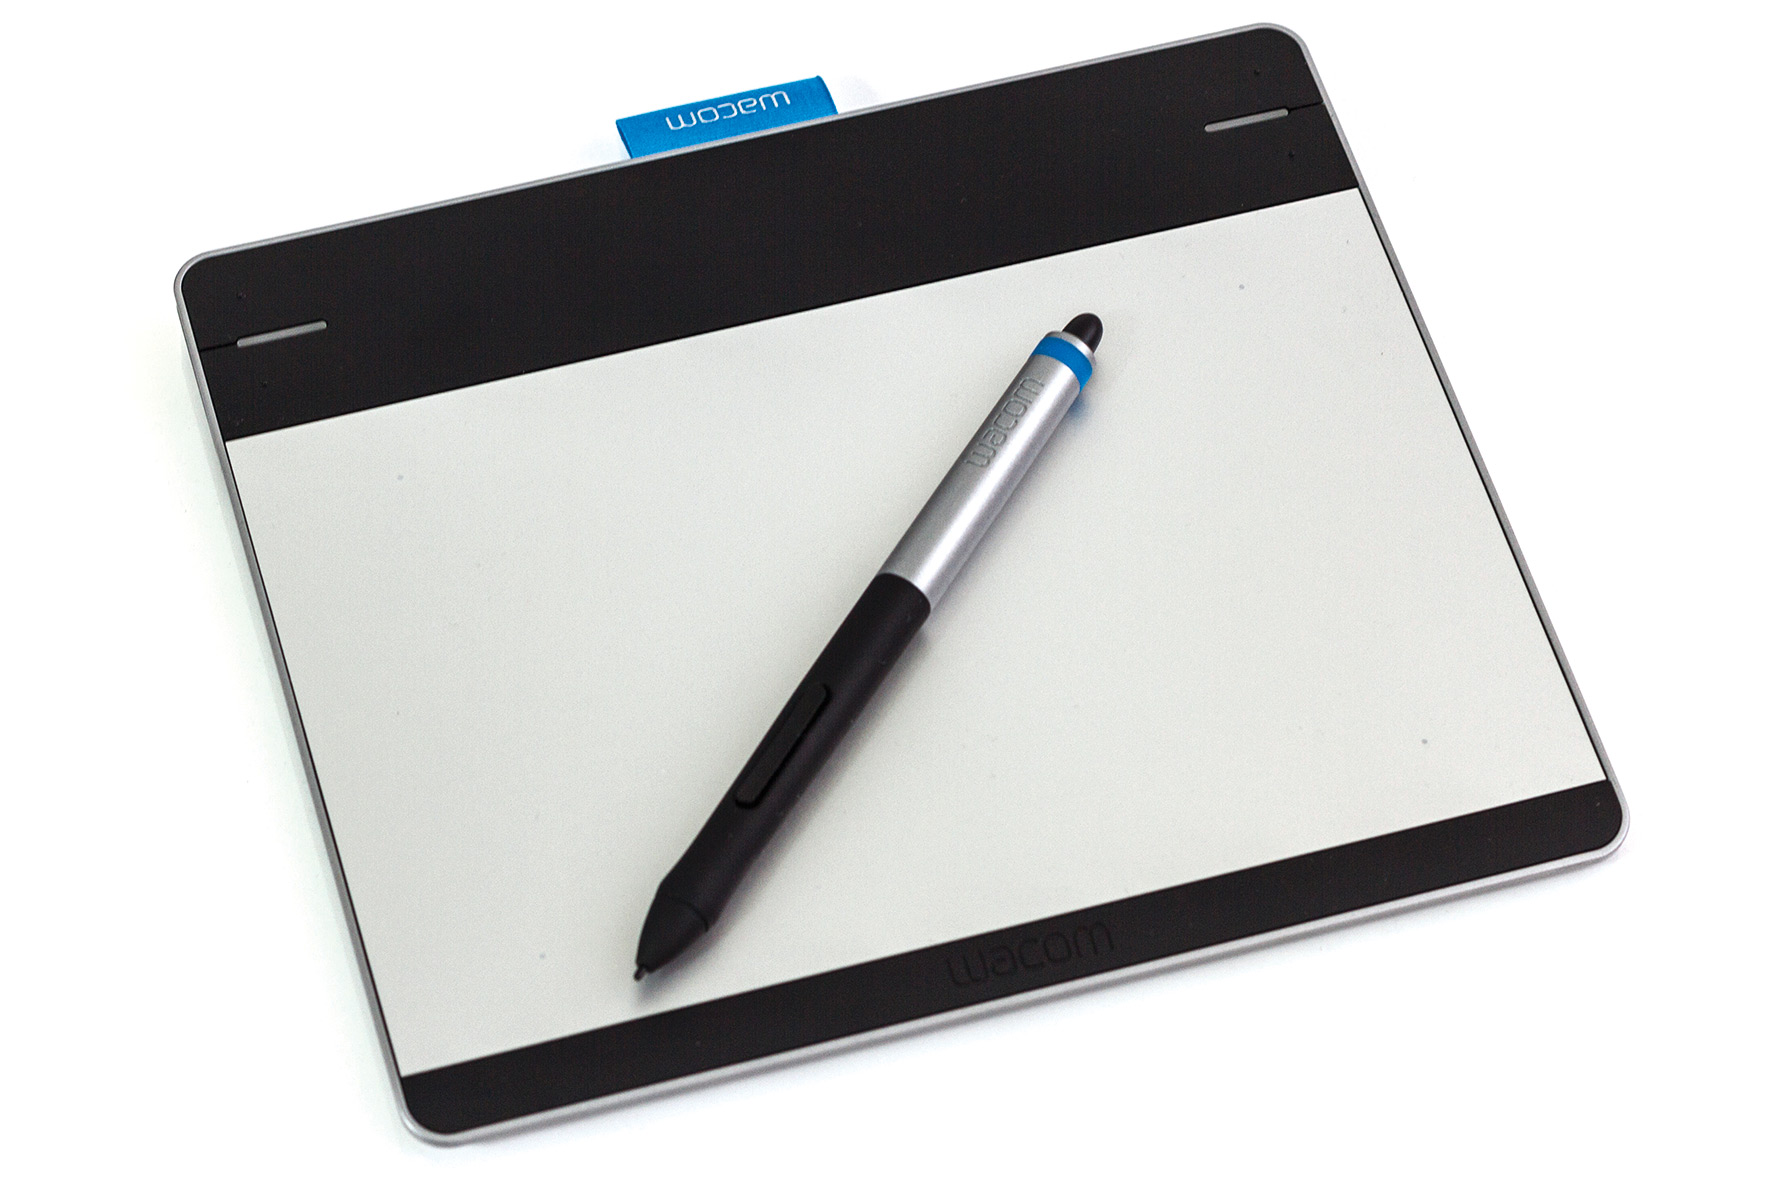 Wacom Intuos pen and touch2